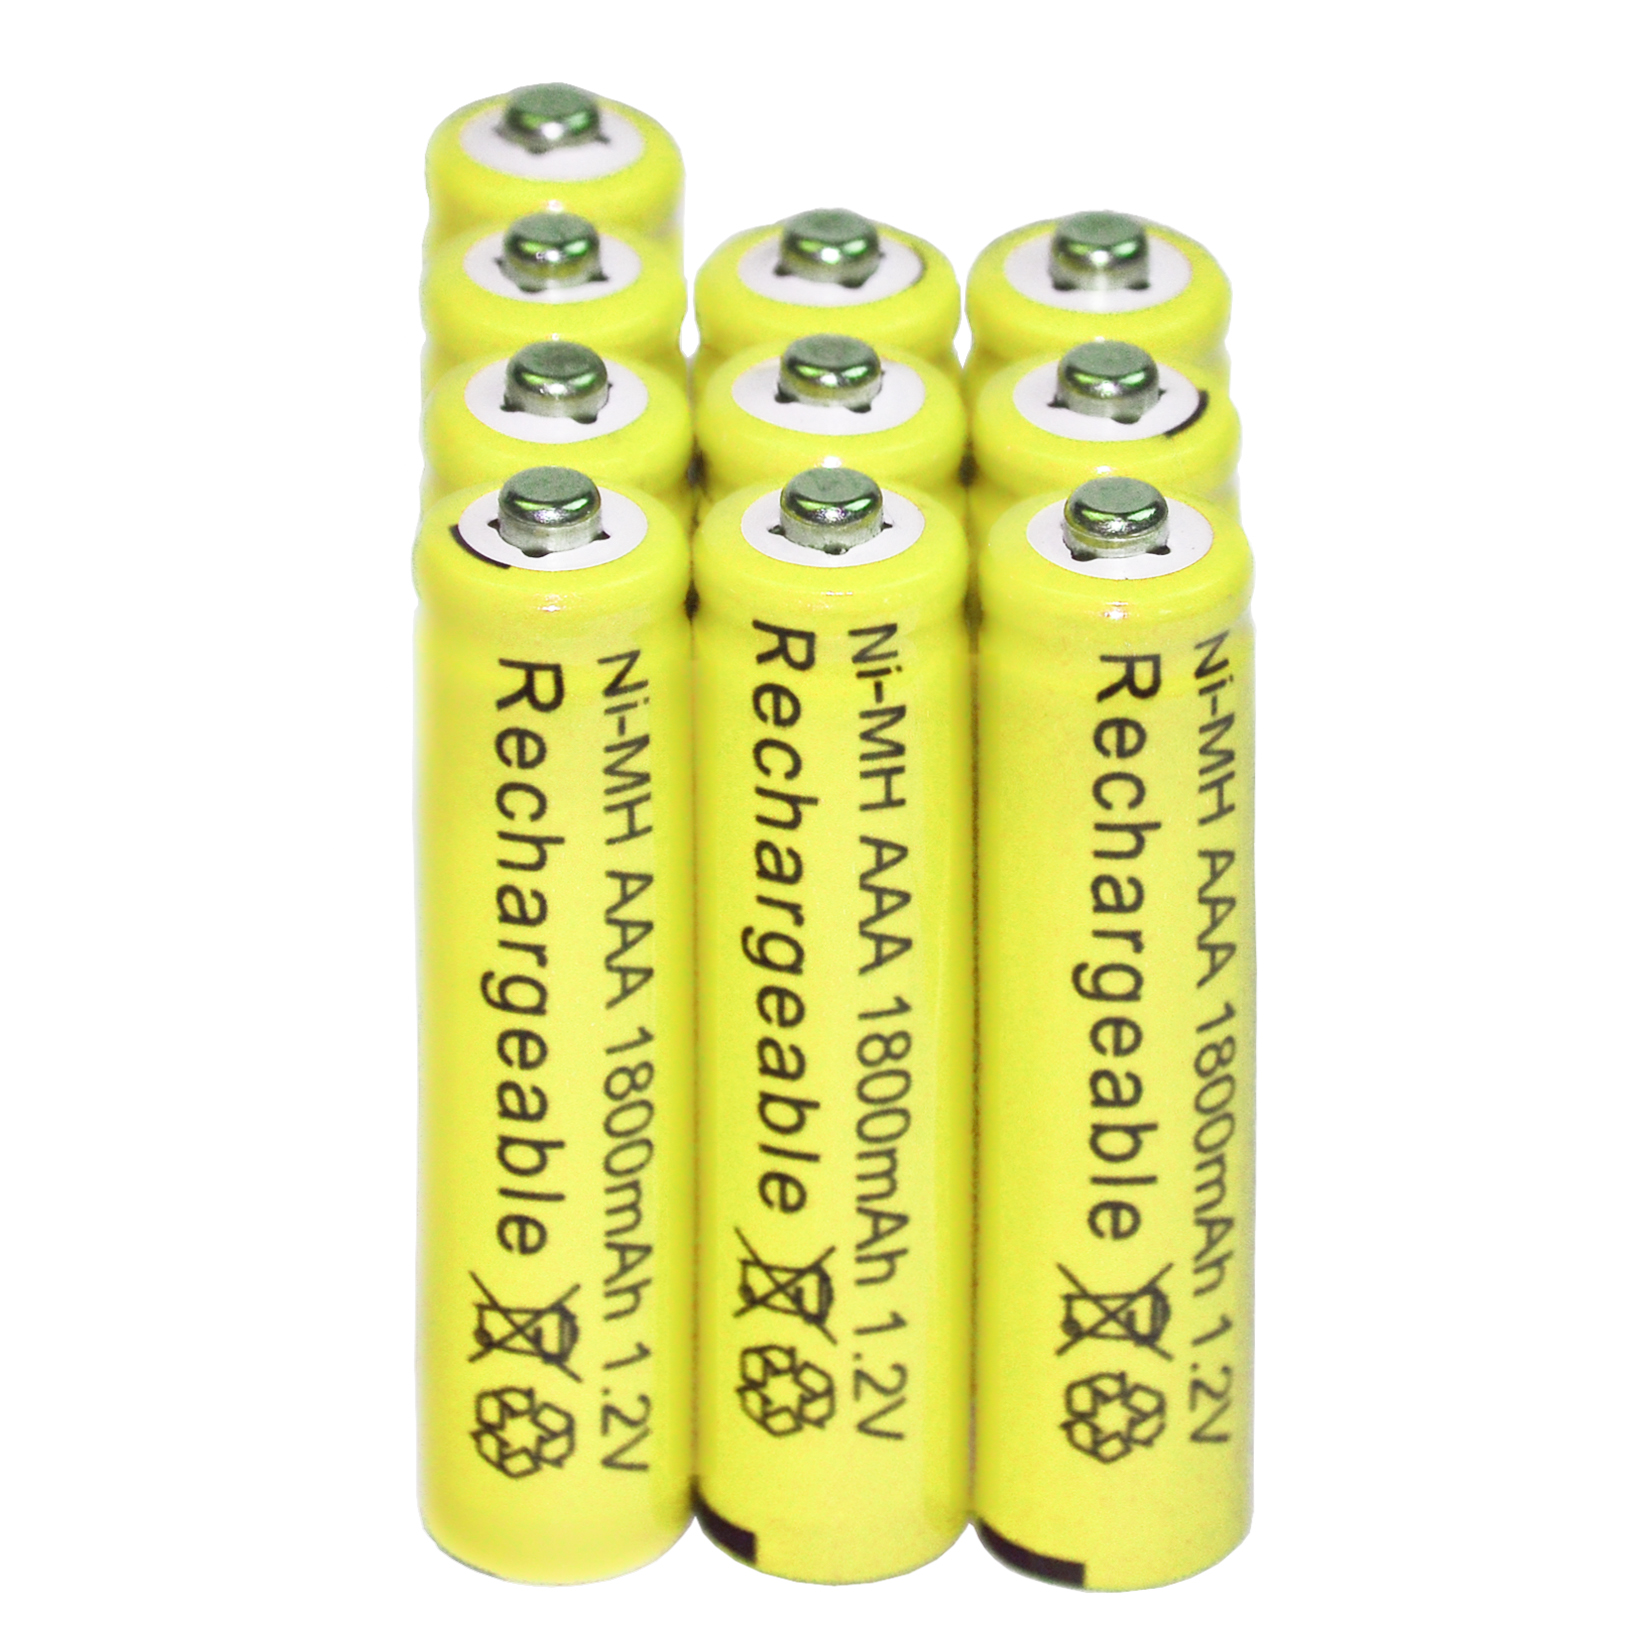 10x AAA battery batteries Bulk Nickel Cadmium Rechargeable NIMH 1800mAh 1.2V Yellow ...